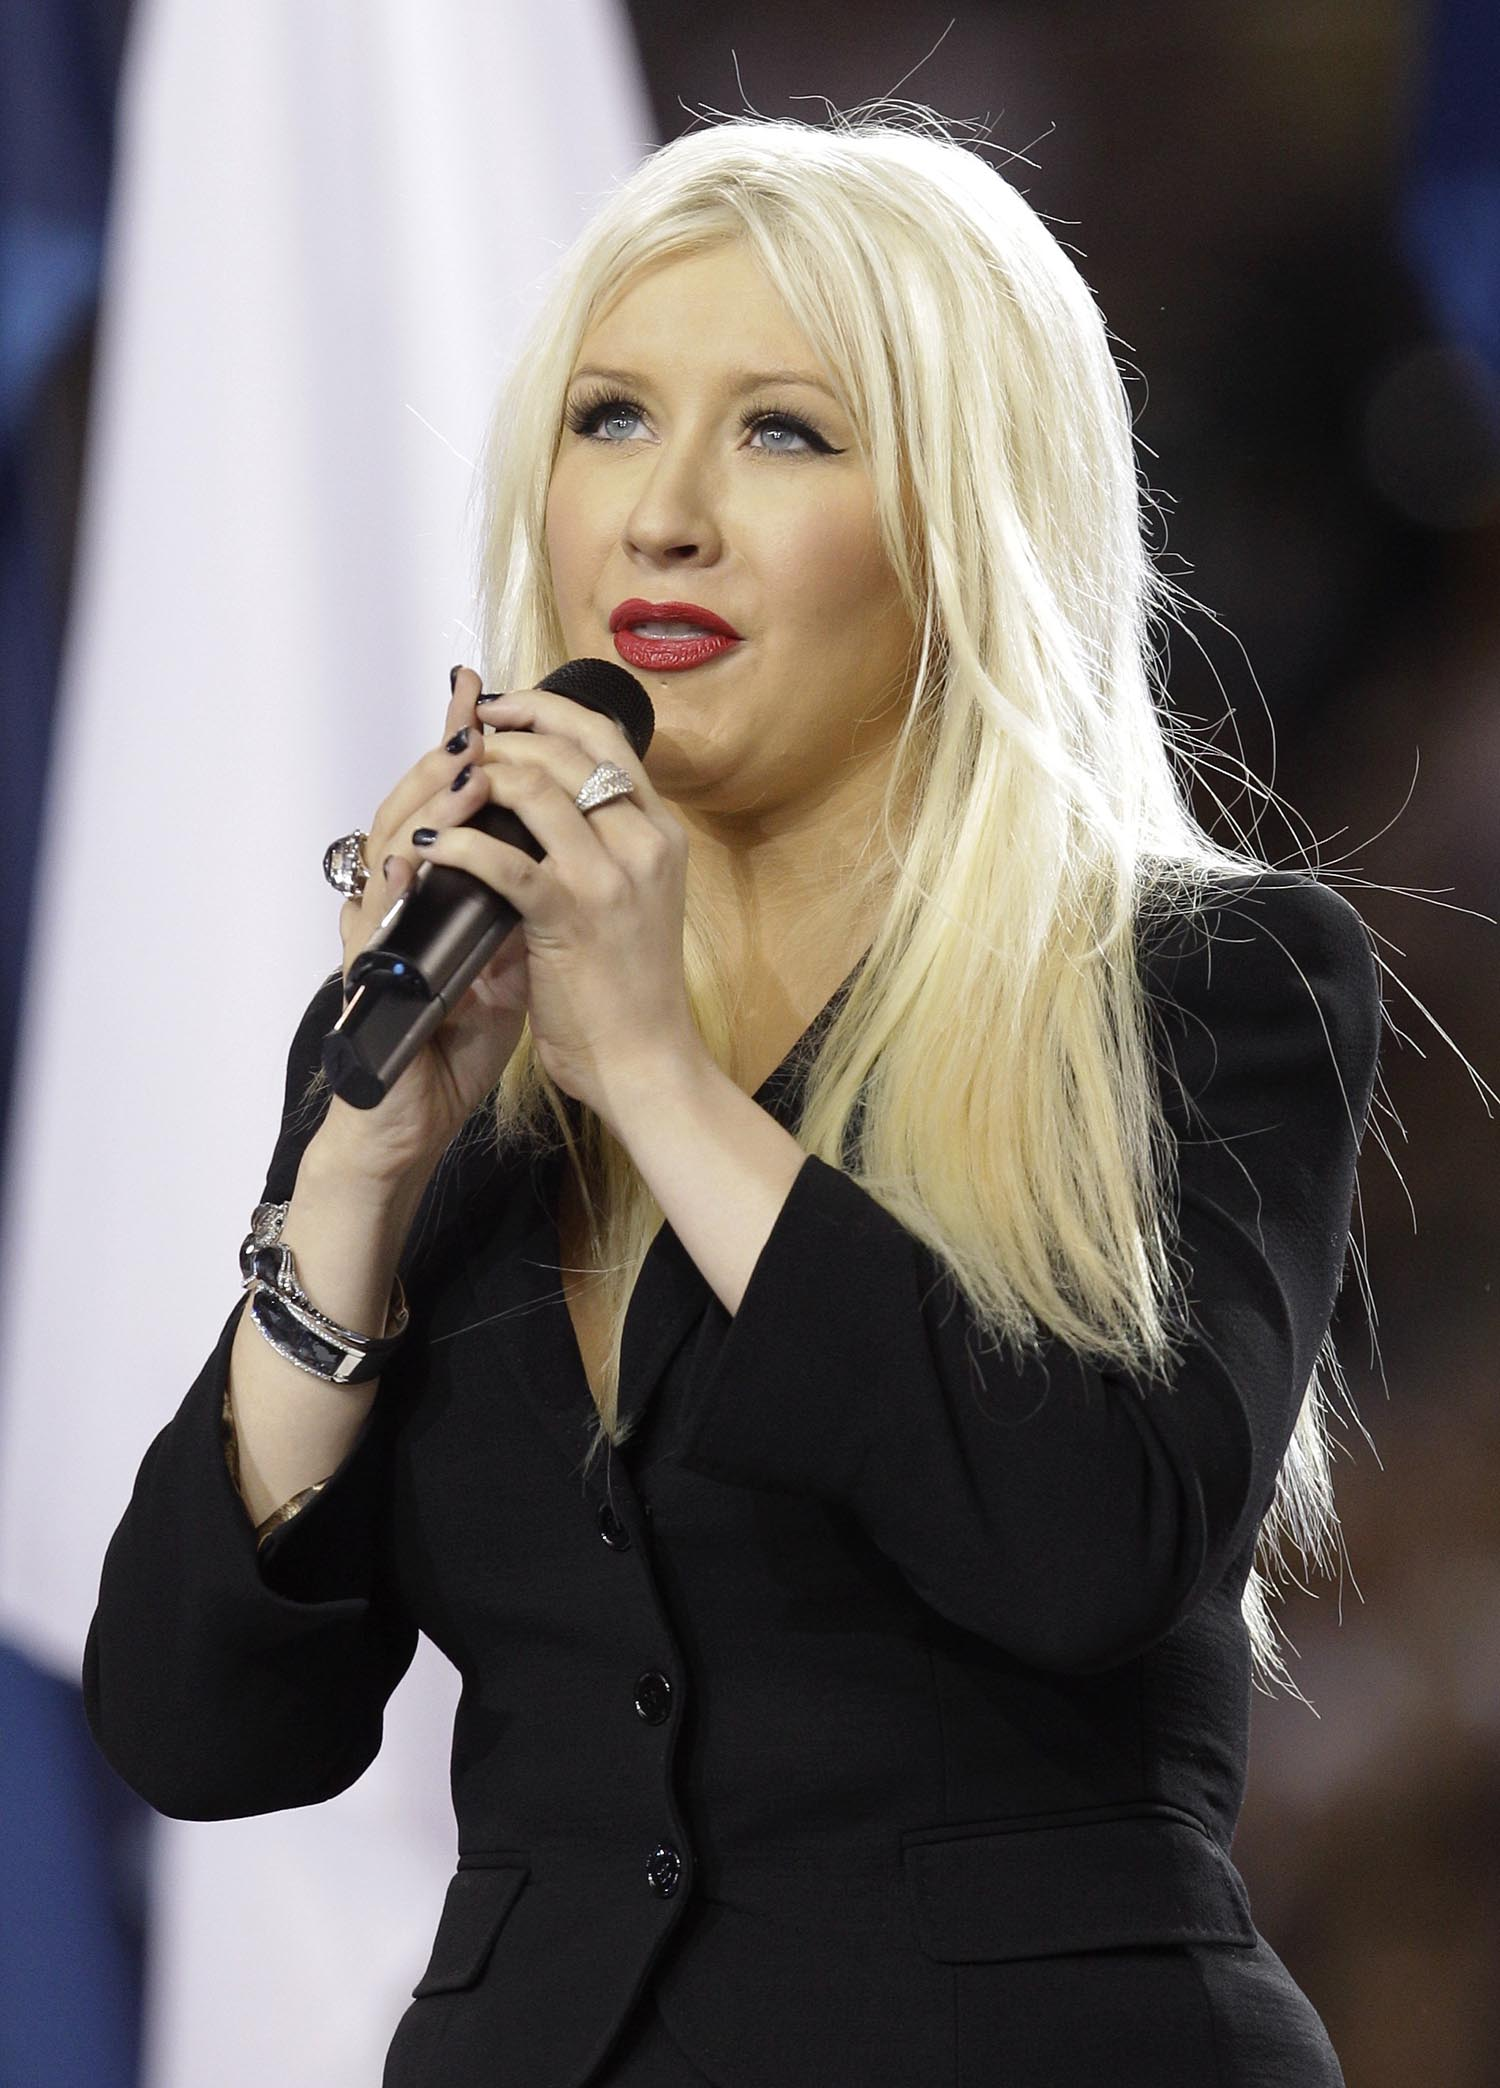 <div class='meta'><div class='origin-logo' data-origin='AP'></div><span class='caption-text' data-credit='AP Photo/David J. Phillip'>2011: Christina Aguilera sings the national anthem before the NFL football Super Bowl XLV game between the Green Bay Packers and the Pittsburgh Steelers in Arlington, Texas.</span></div>